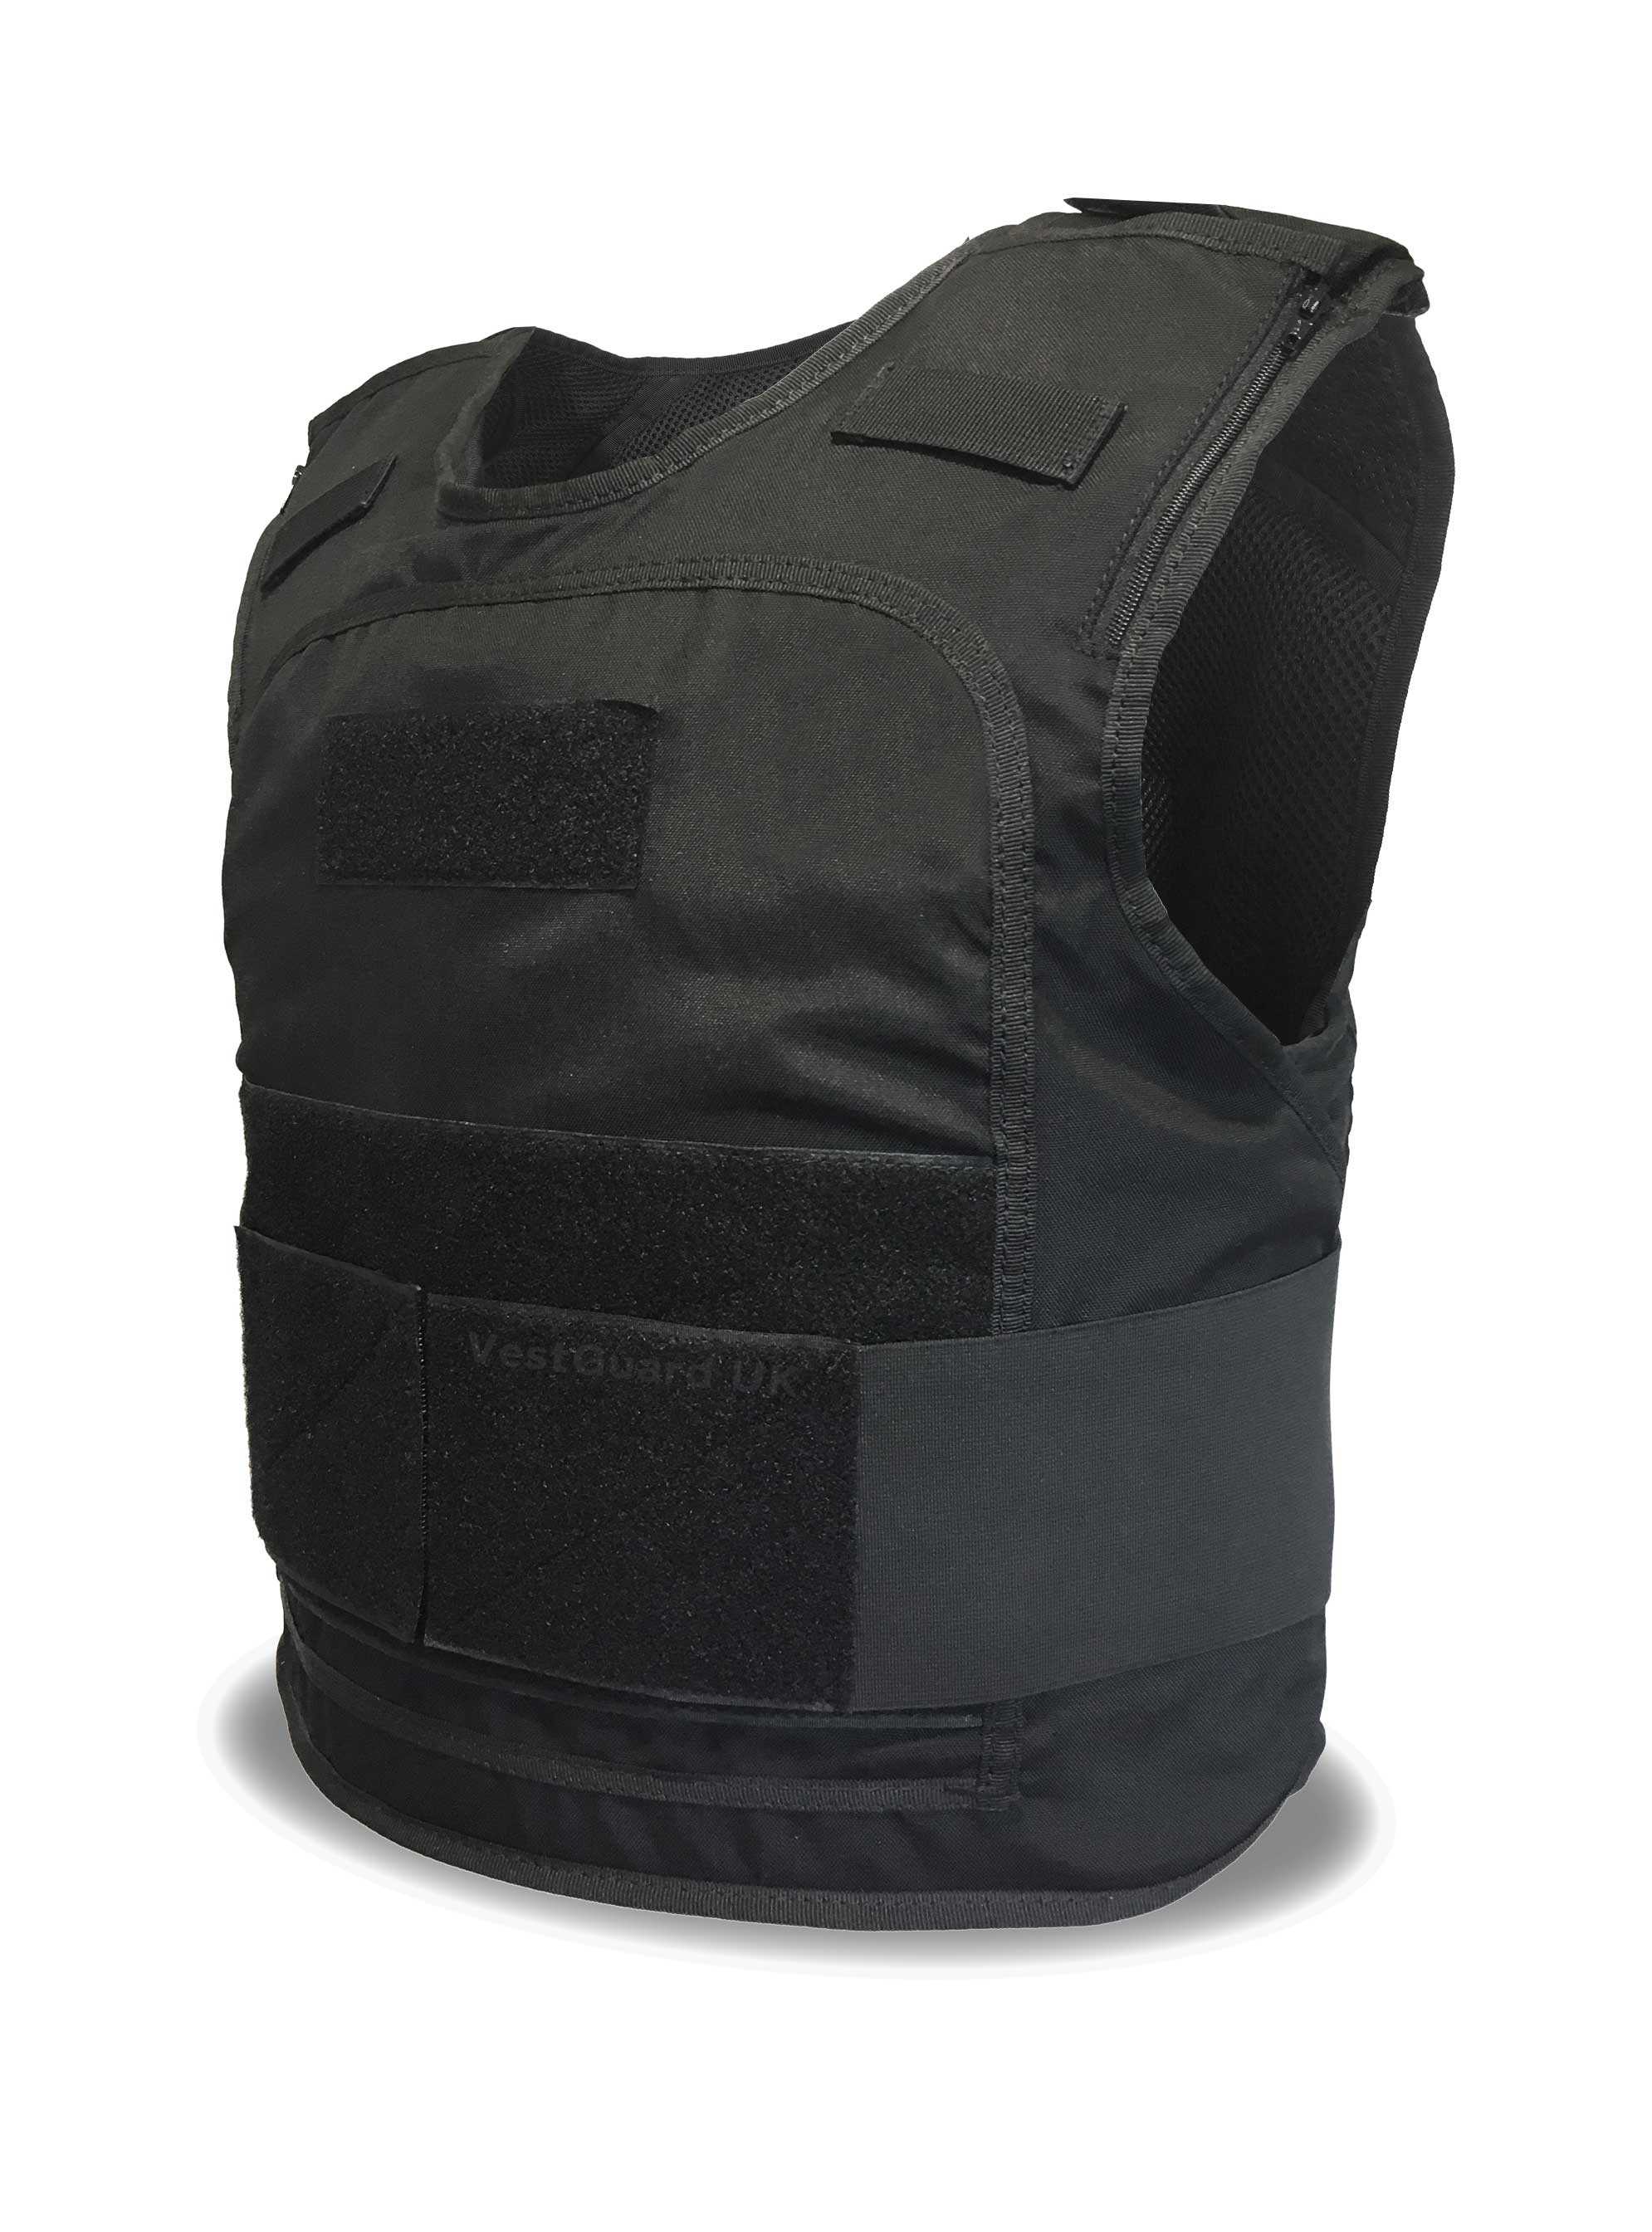 ca43bc95ff8 Global Security Body Armour - www.vestguard.com